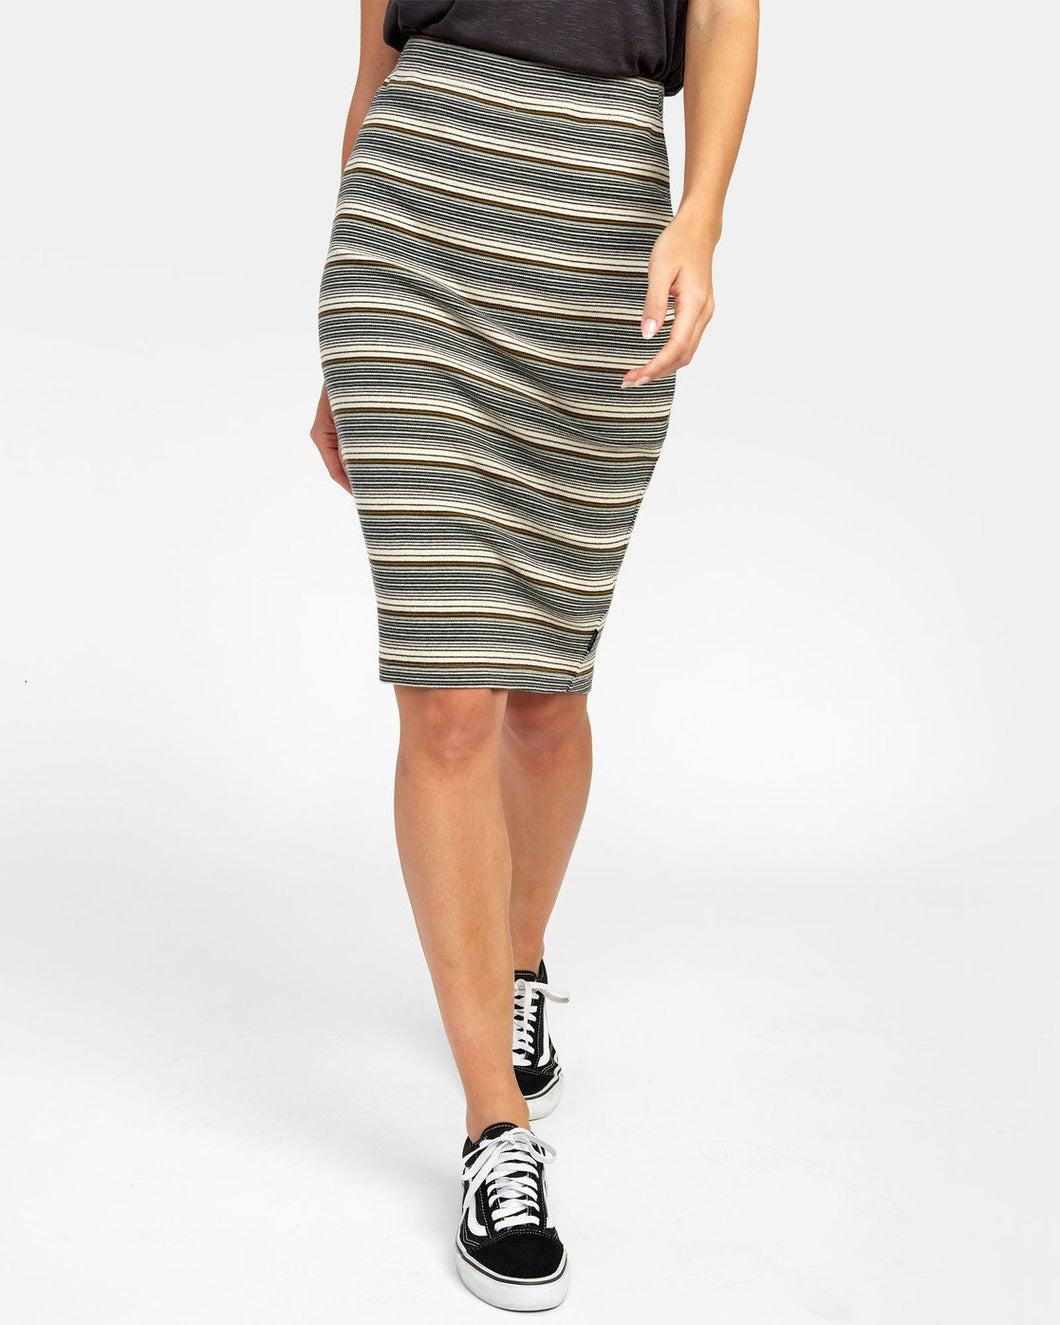 RVCA PICK ME UP KNIT SKIRT